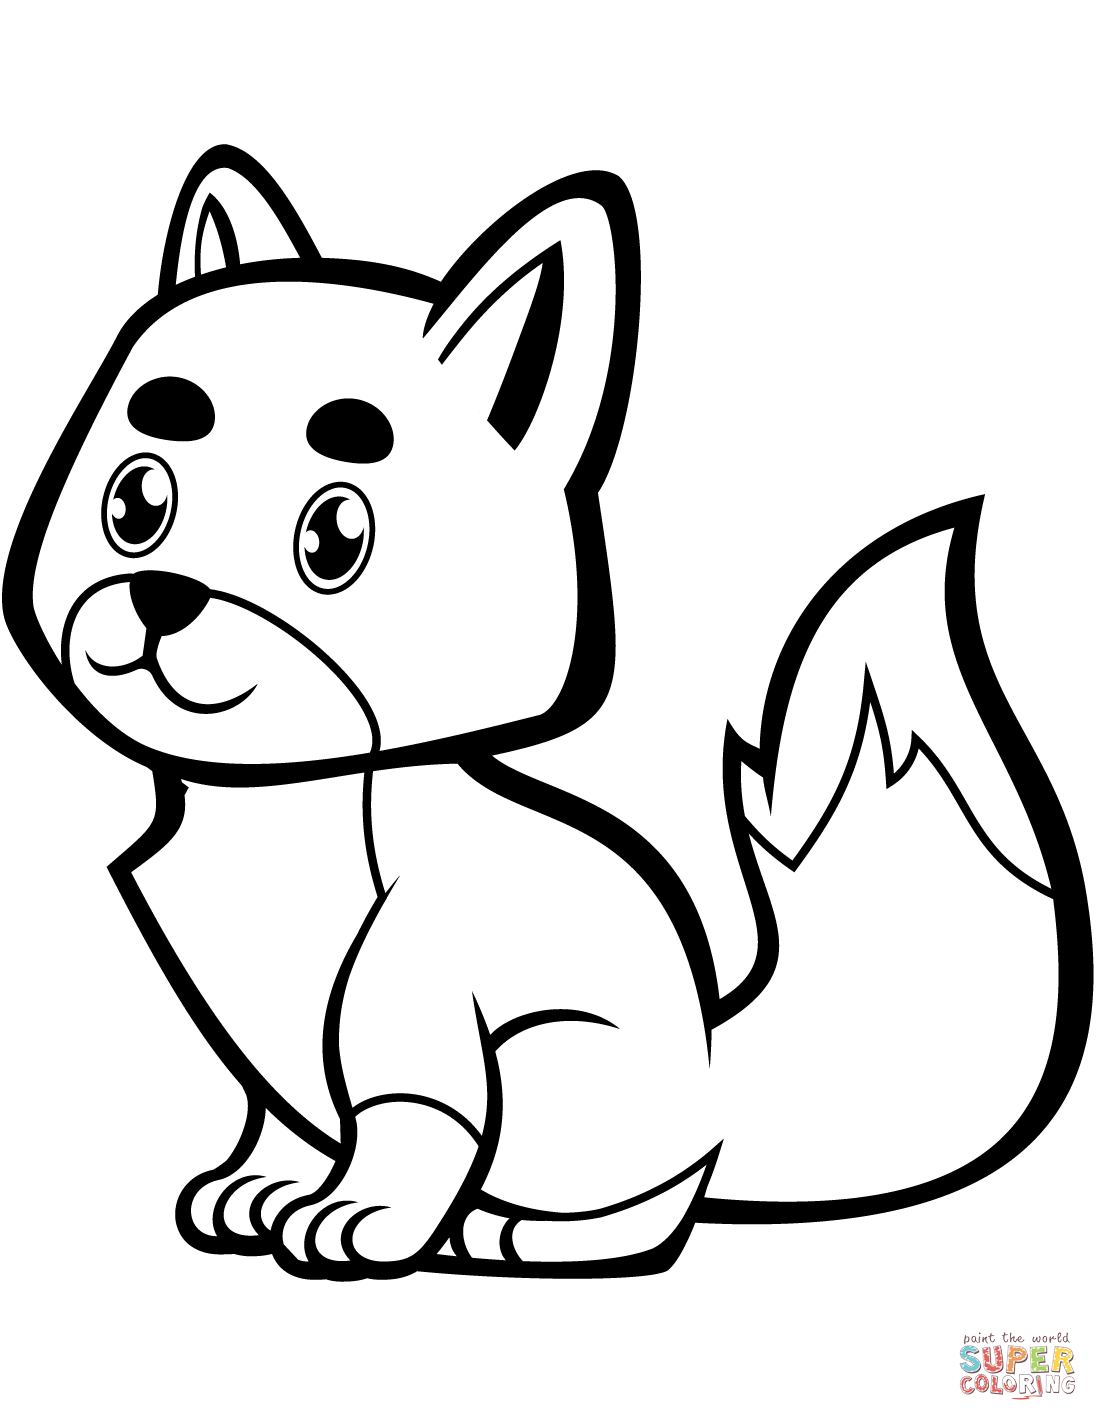 Cute Baby Fox Coloring Page Free Printable Coloring Pages Fox Coloring Page Giraffe Coloring Pages Coloring Pages